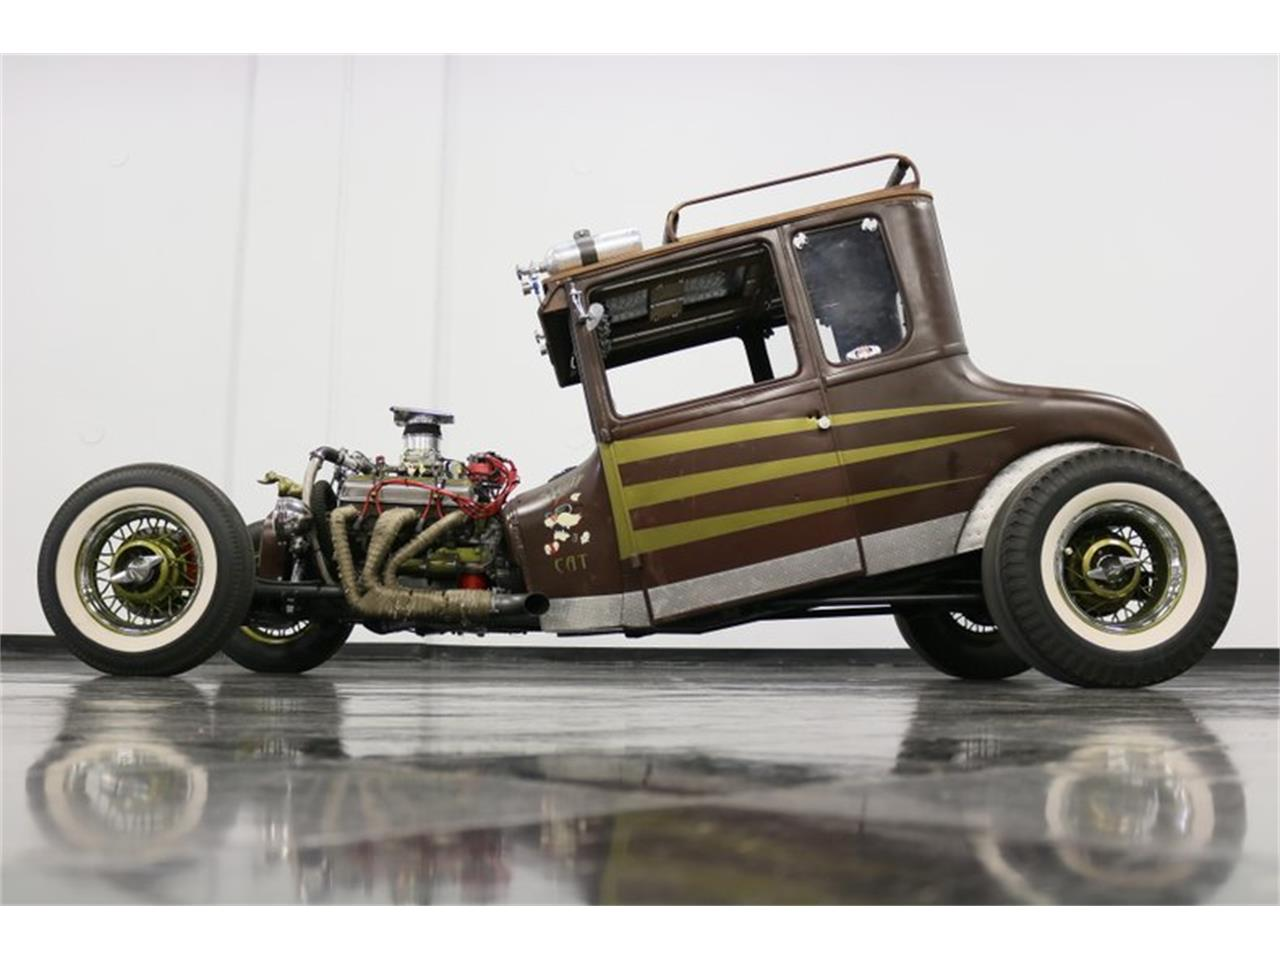 Large Picture of Classic '27 Ford Coupe - $31,995.00 Offered by Streetside Classics - Dallas / Fort Worth - Q4LA